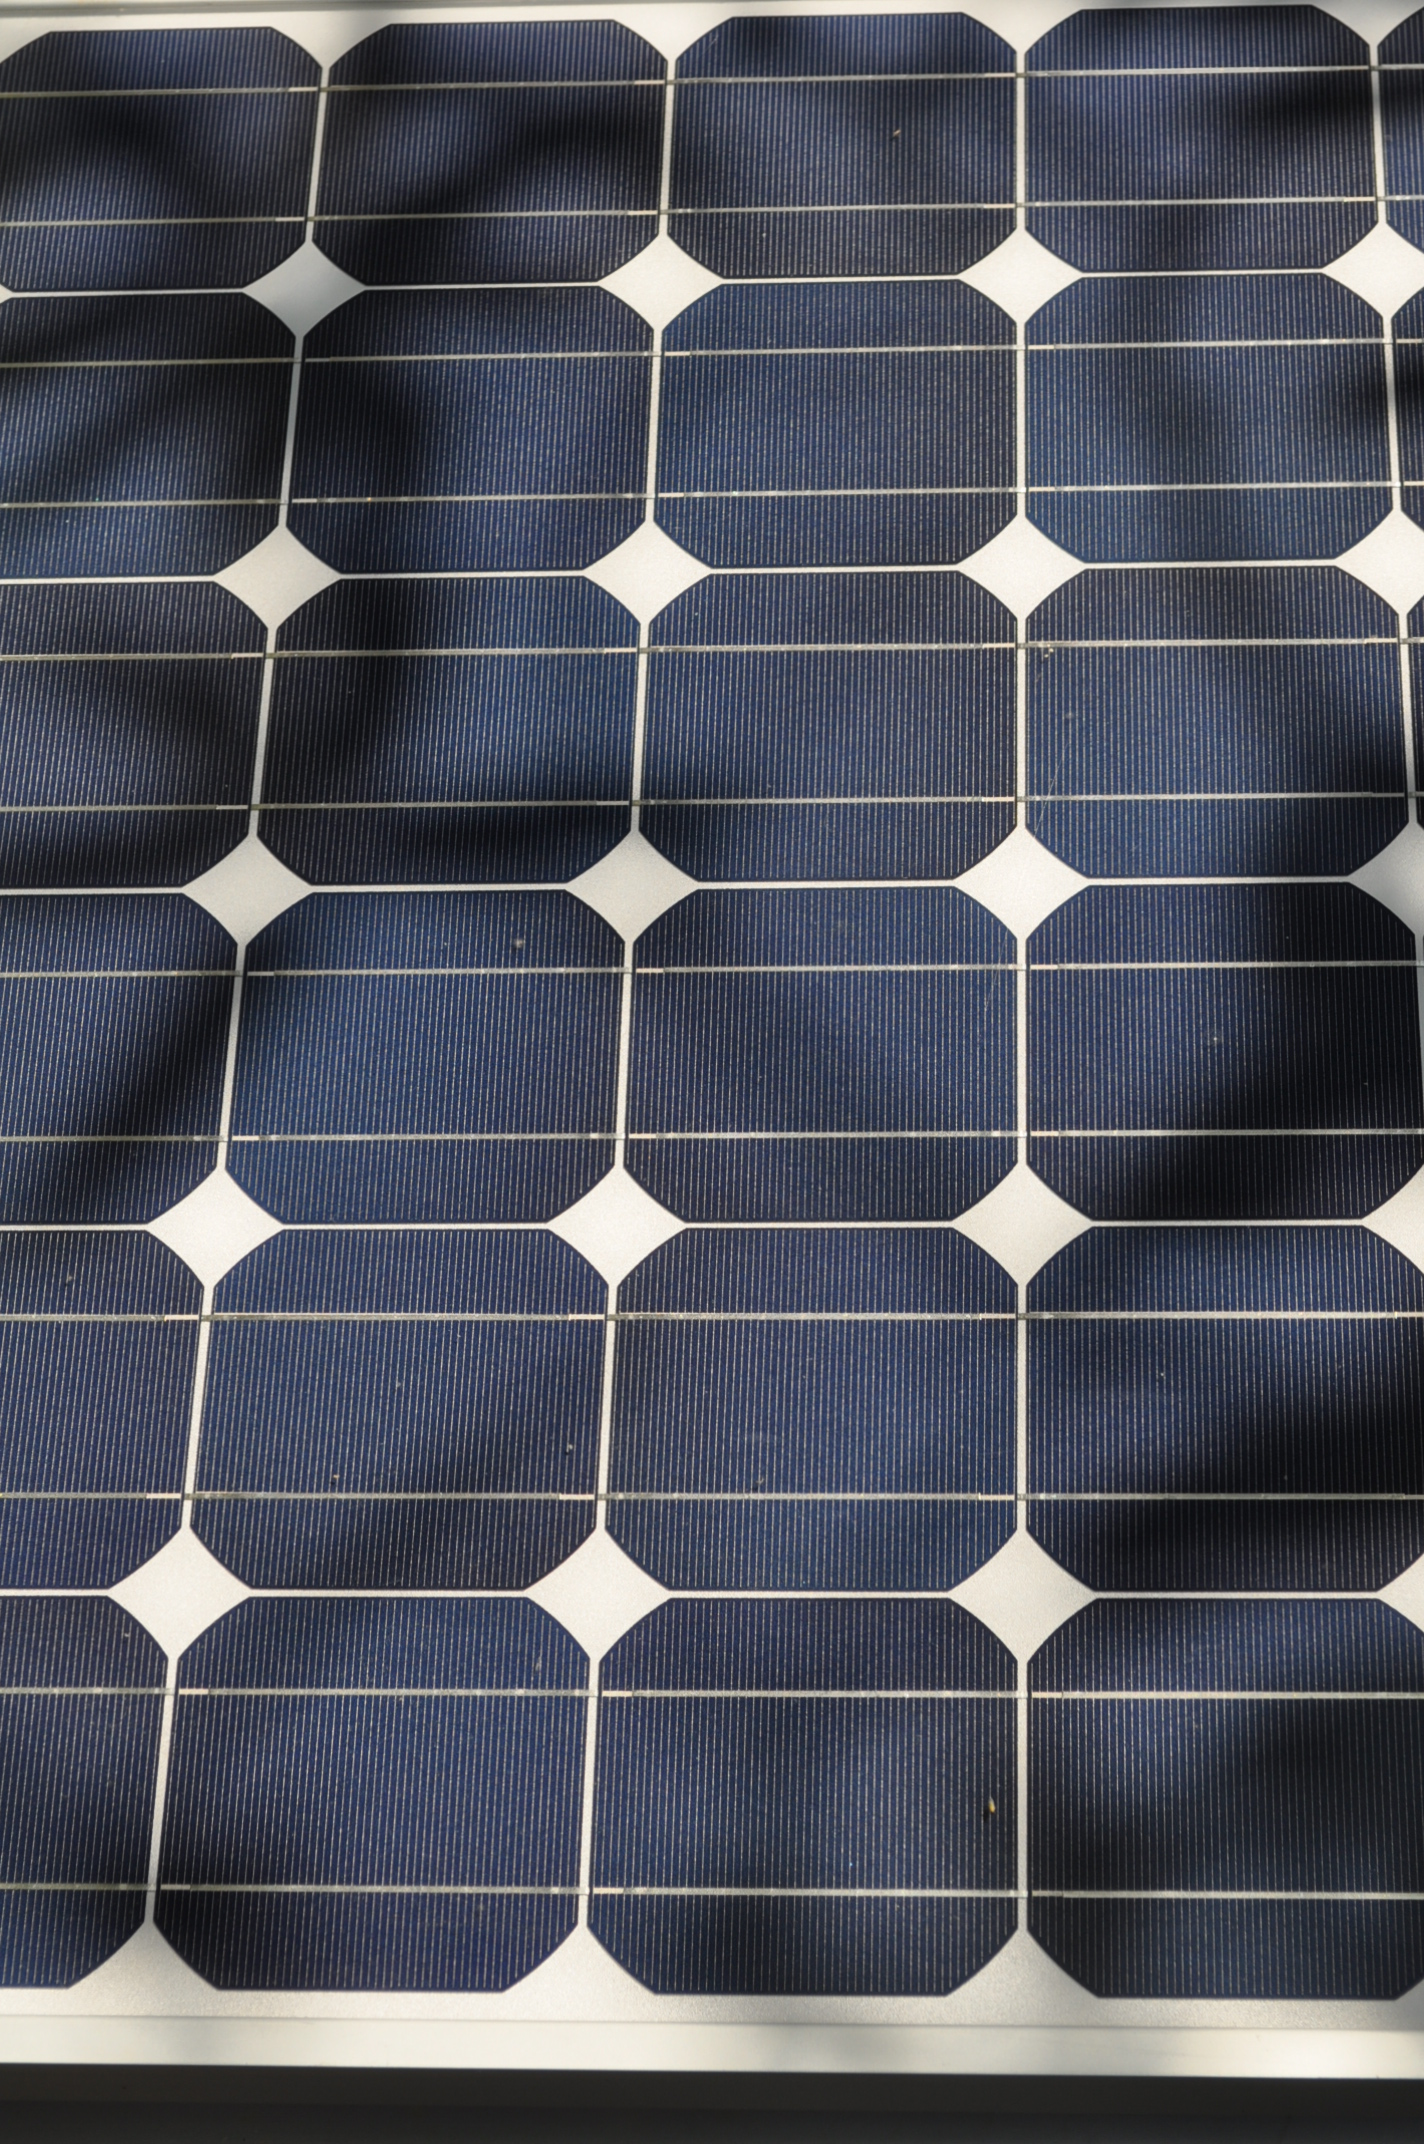 Picture of Solar Panels, What's Going to Generate Your Power